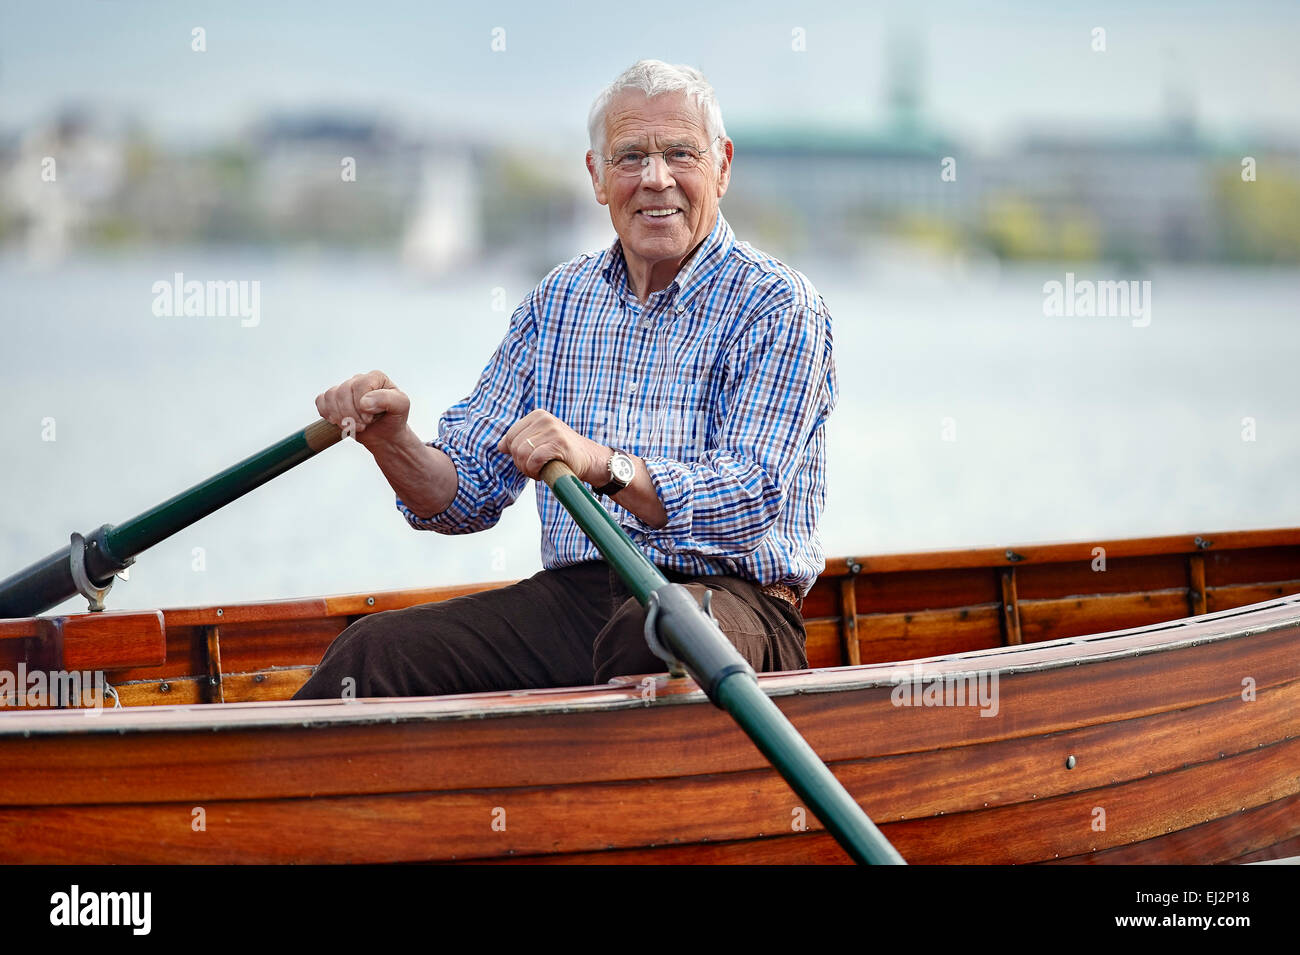 Senior riding on a rowboat - Stock Image